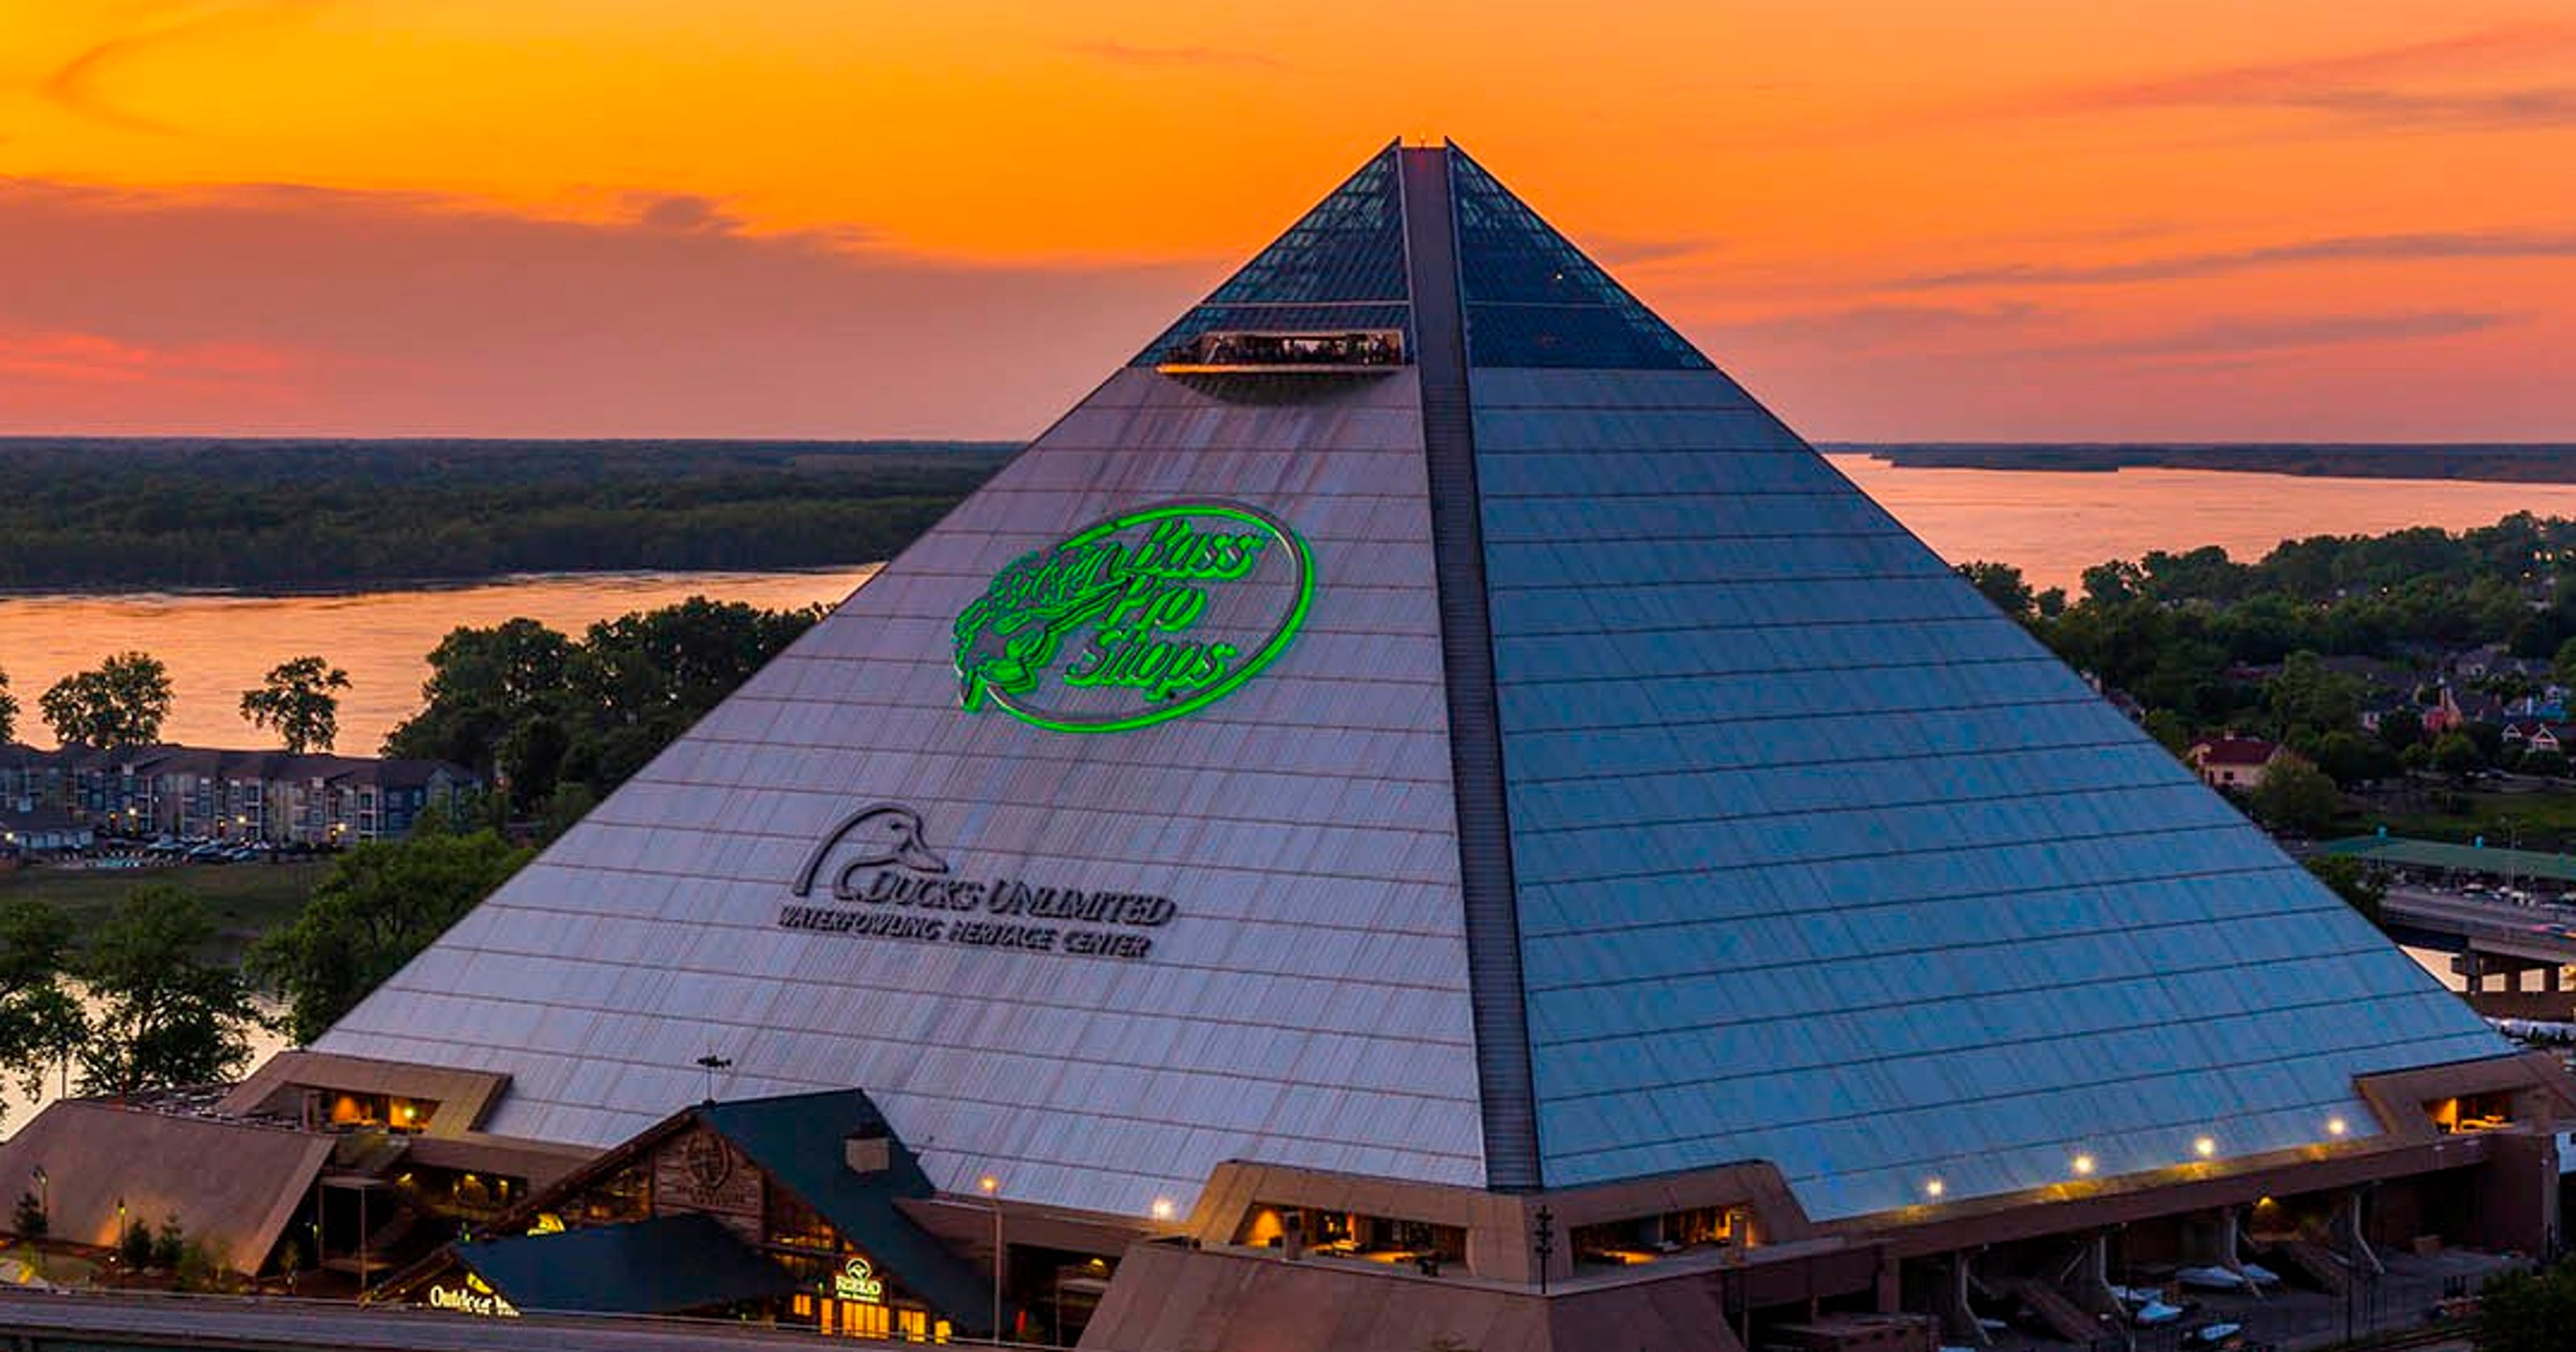 memphis pyramid brings bass pro shops new lodging to booming city